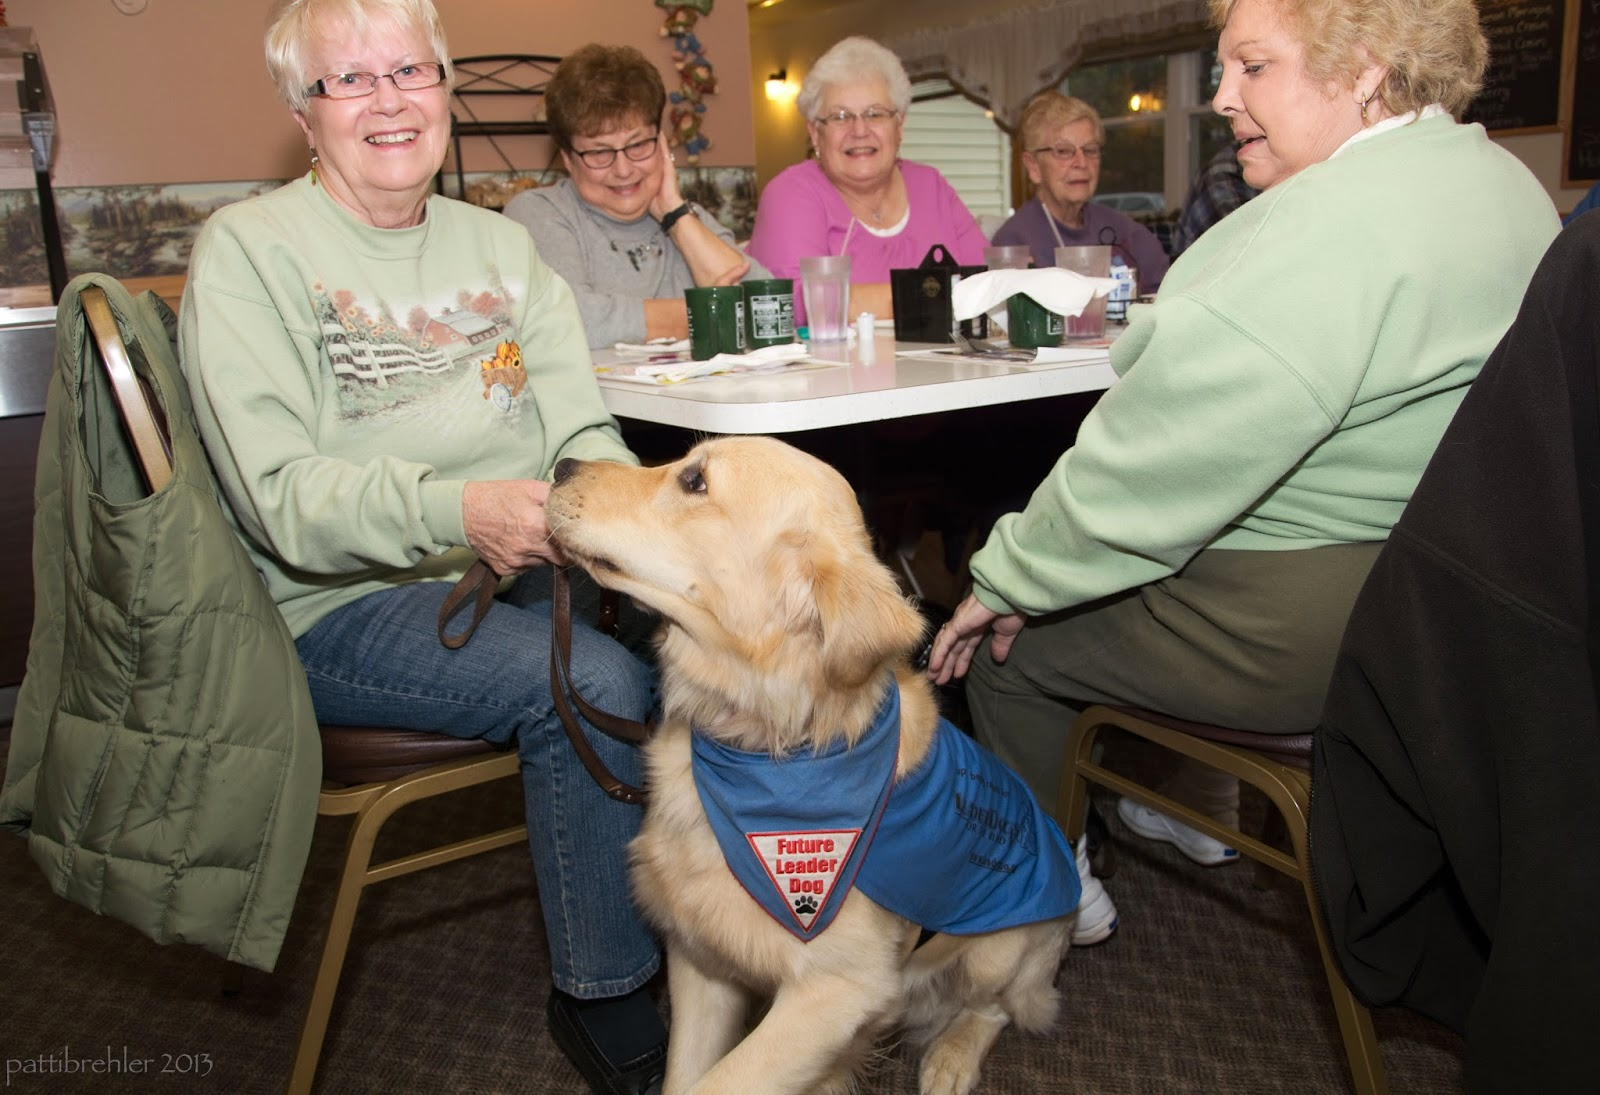 A group of older women are sitting at a restaurant table. The woman on the left side is holding the leash of a golden retriever, who is wearing a blue bandana and jacket. The dog looks like he is about to leap on her lap, the women are all smiling. The two women in front are wearing light green sweatshirts.